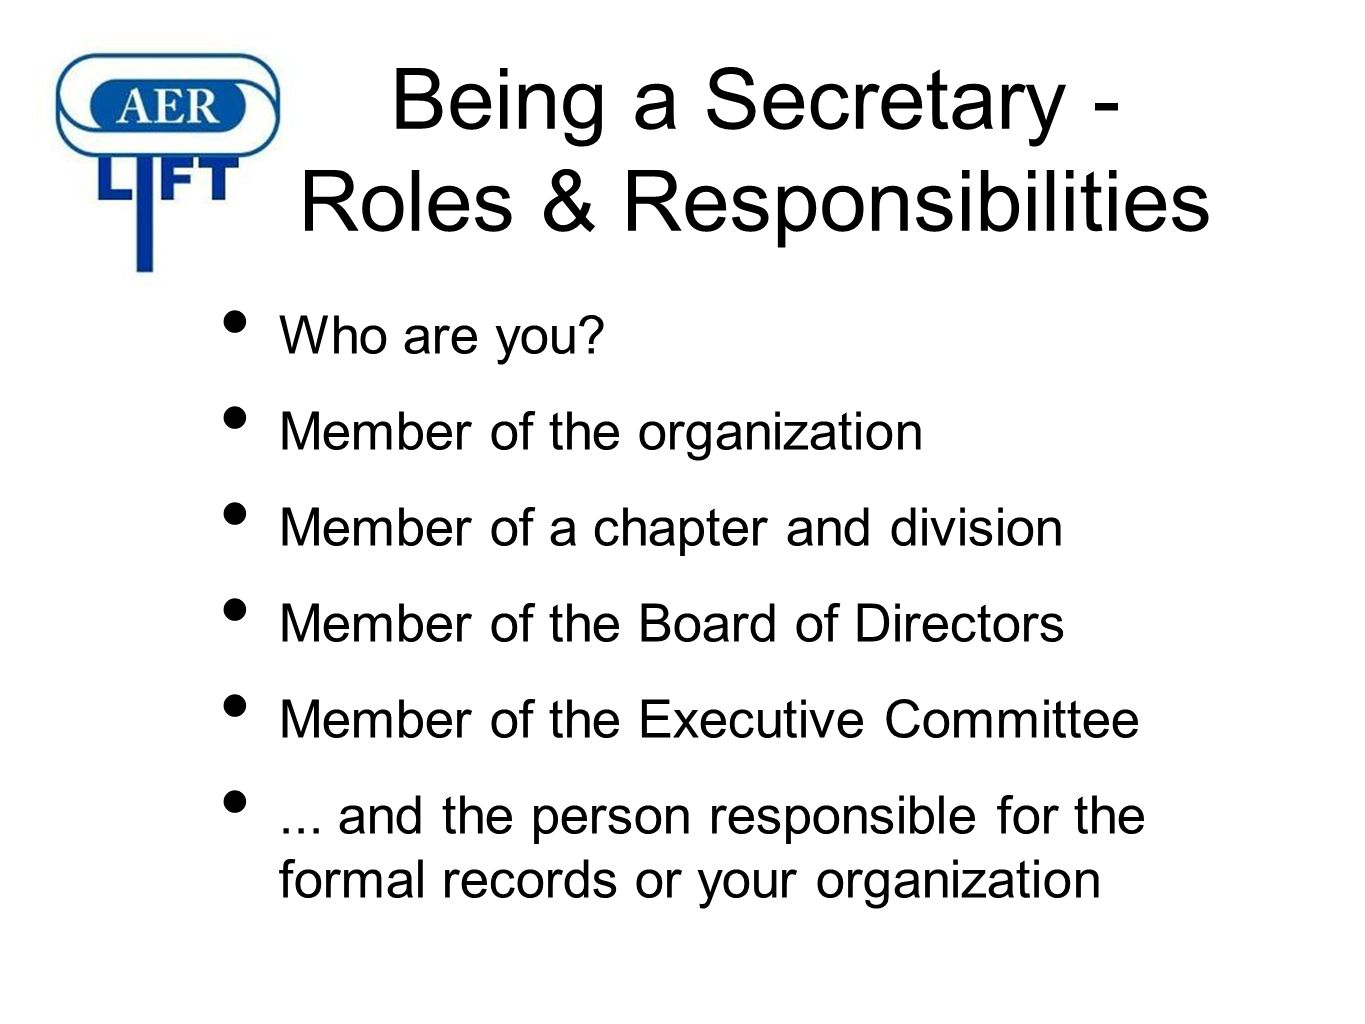 What are the duties of the secretary